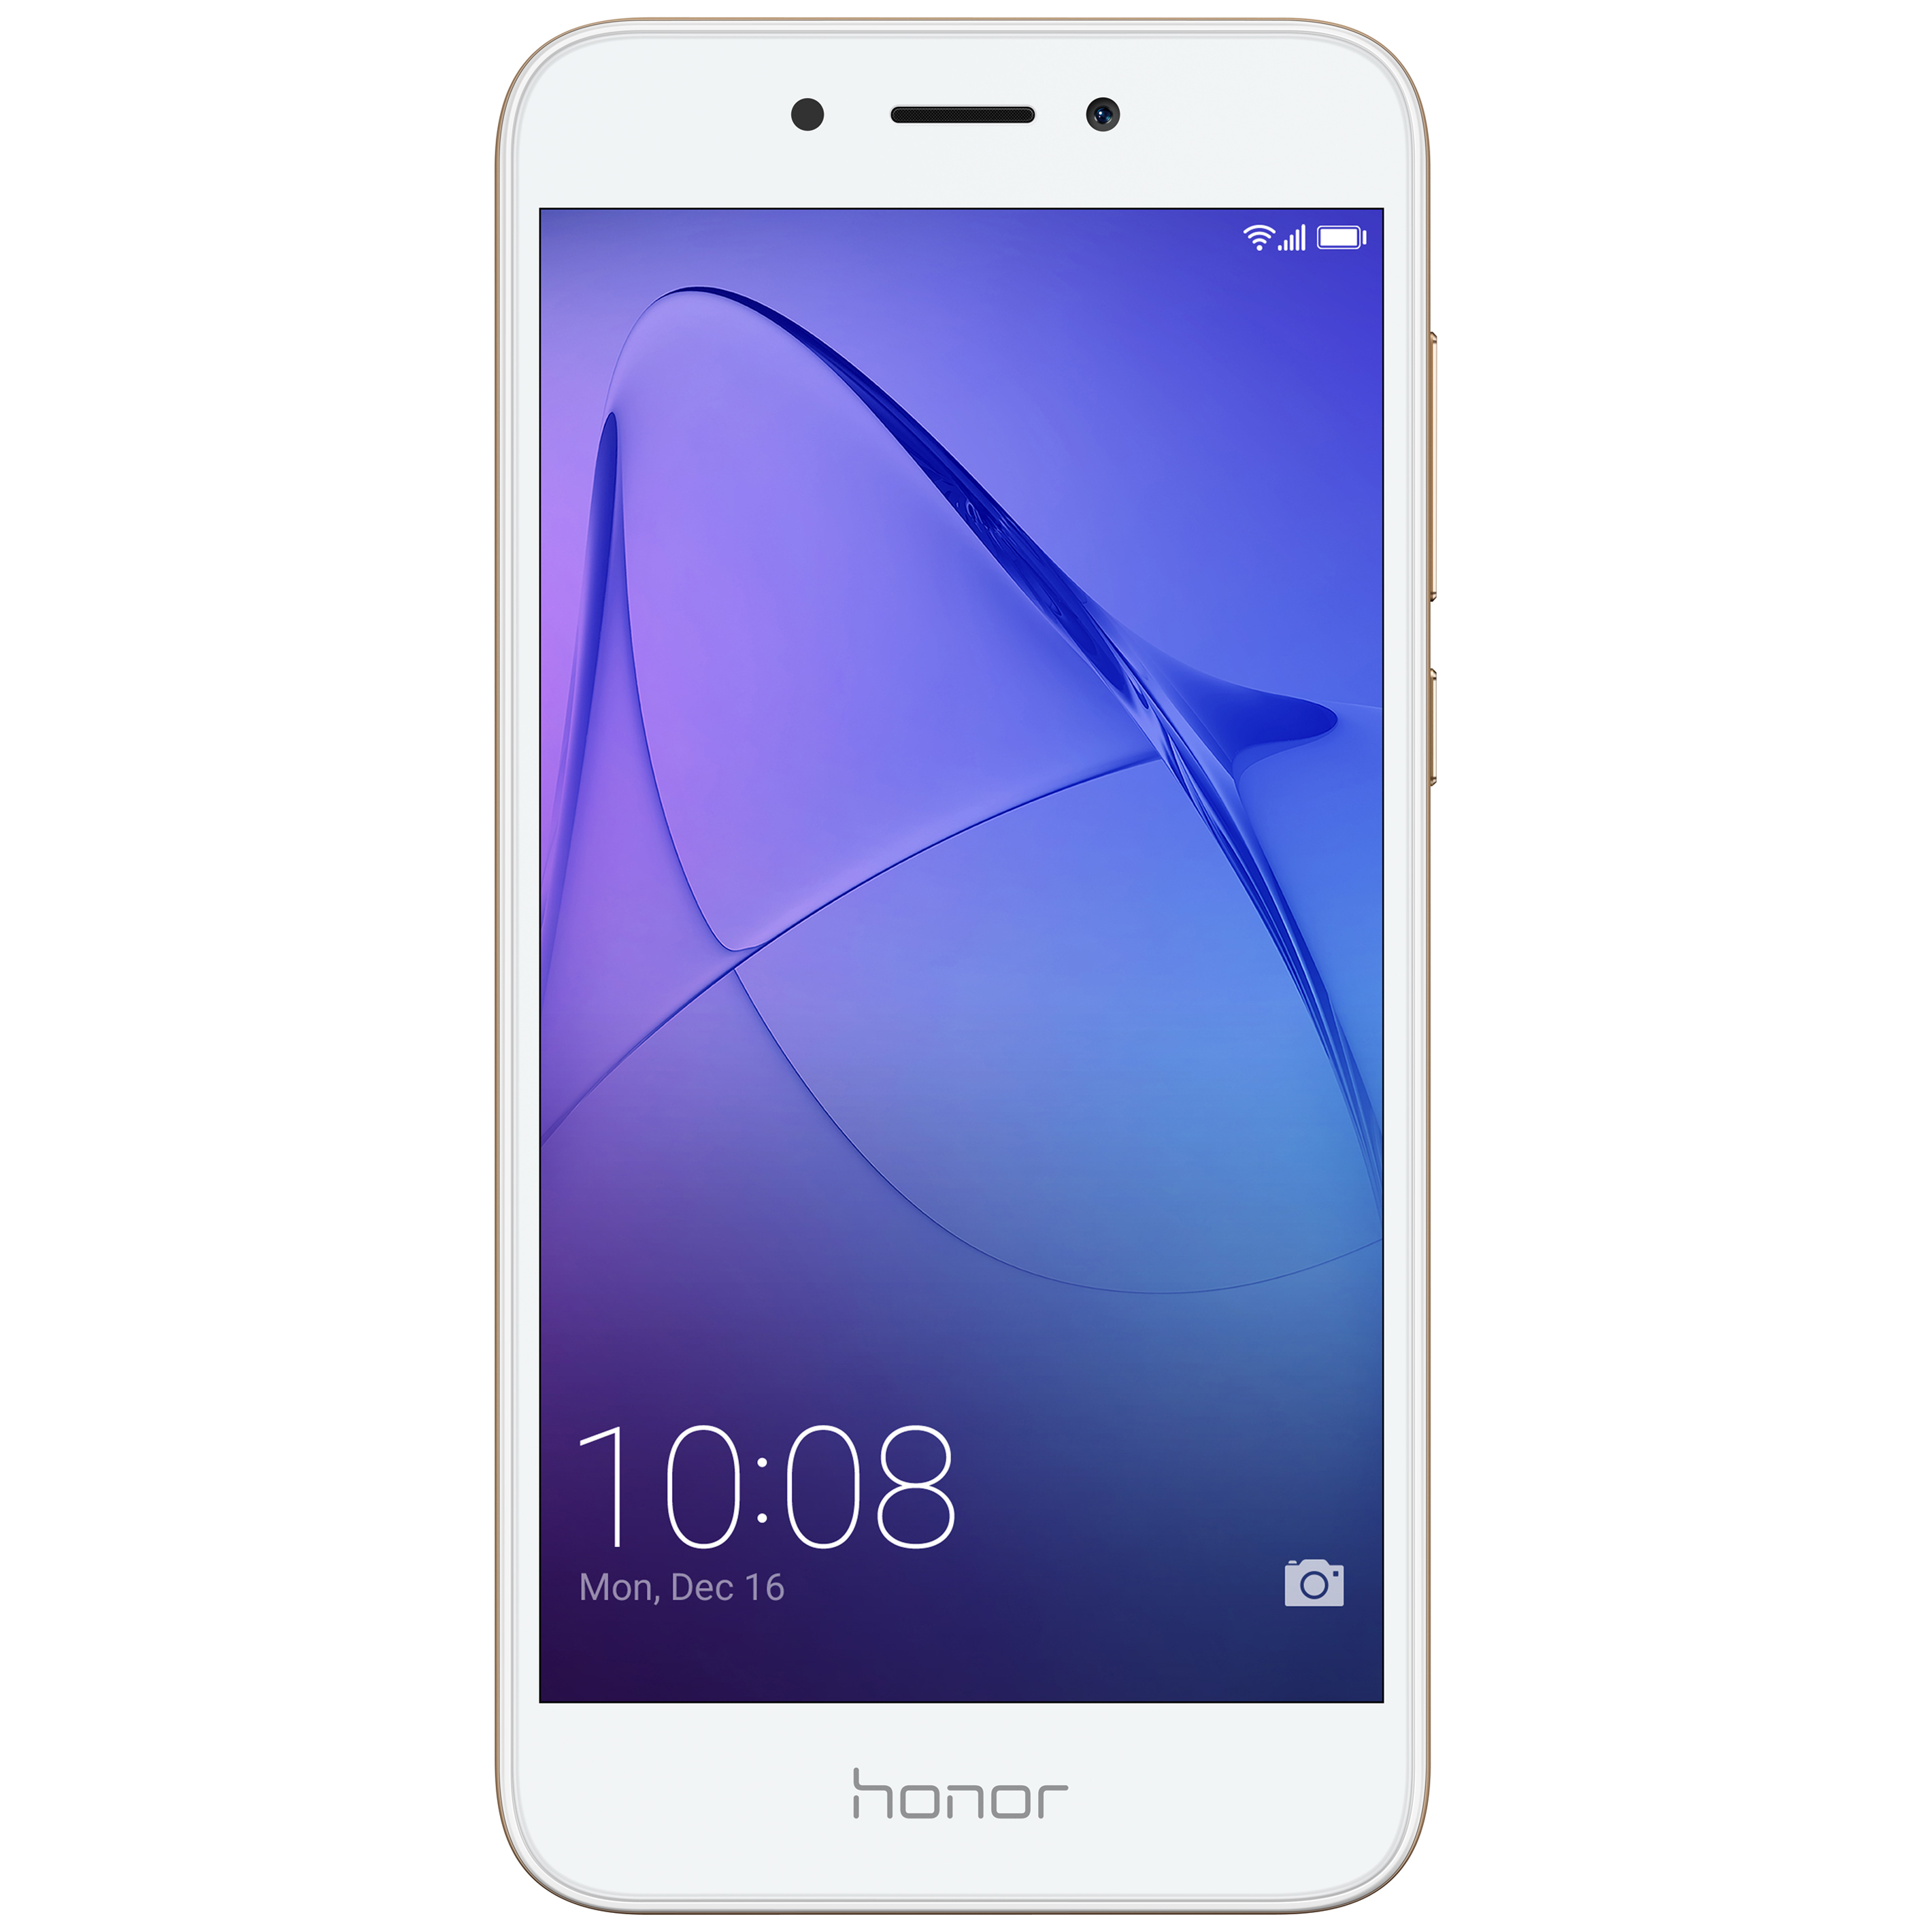 Huawei Honor 5c Pro 4g Dual Sim Smartphone 32gb Grey Price Voucher 3 2gb Gold